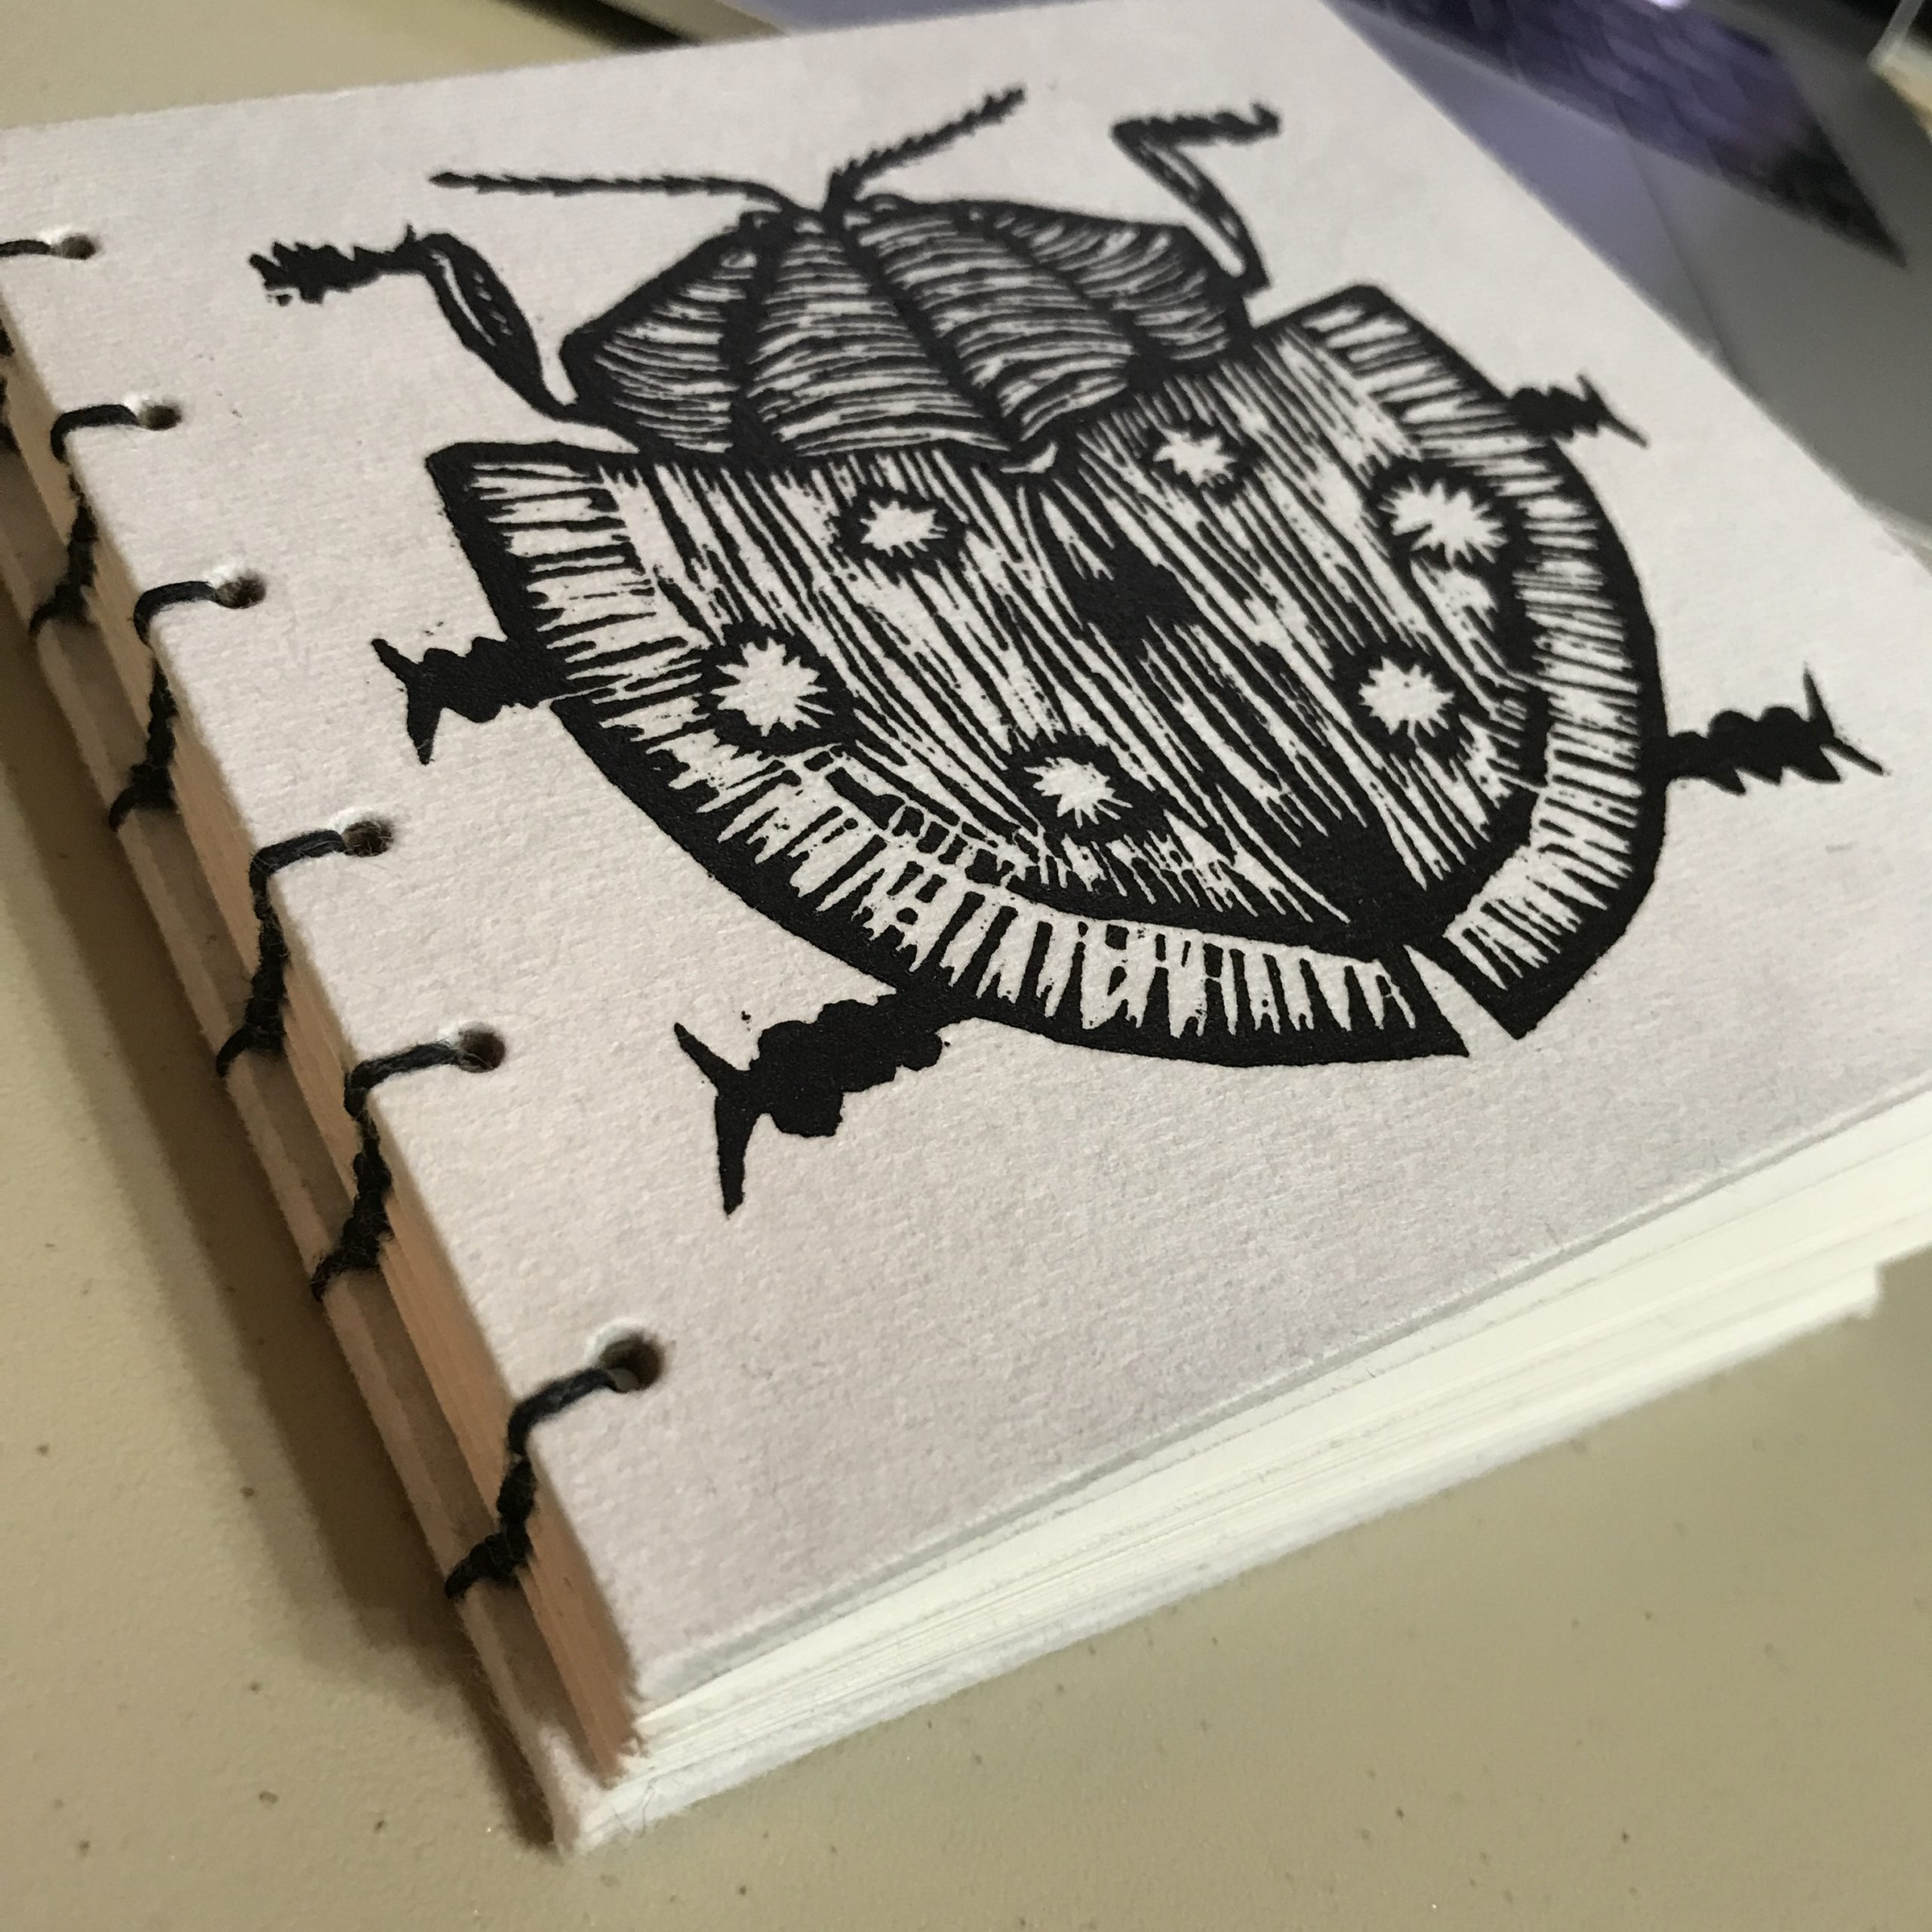 Sketchbook with bug linocut on cover